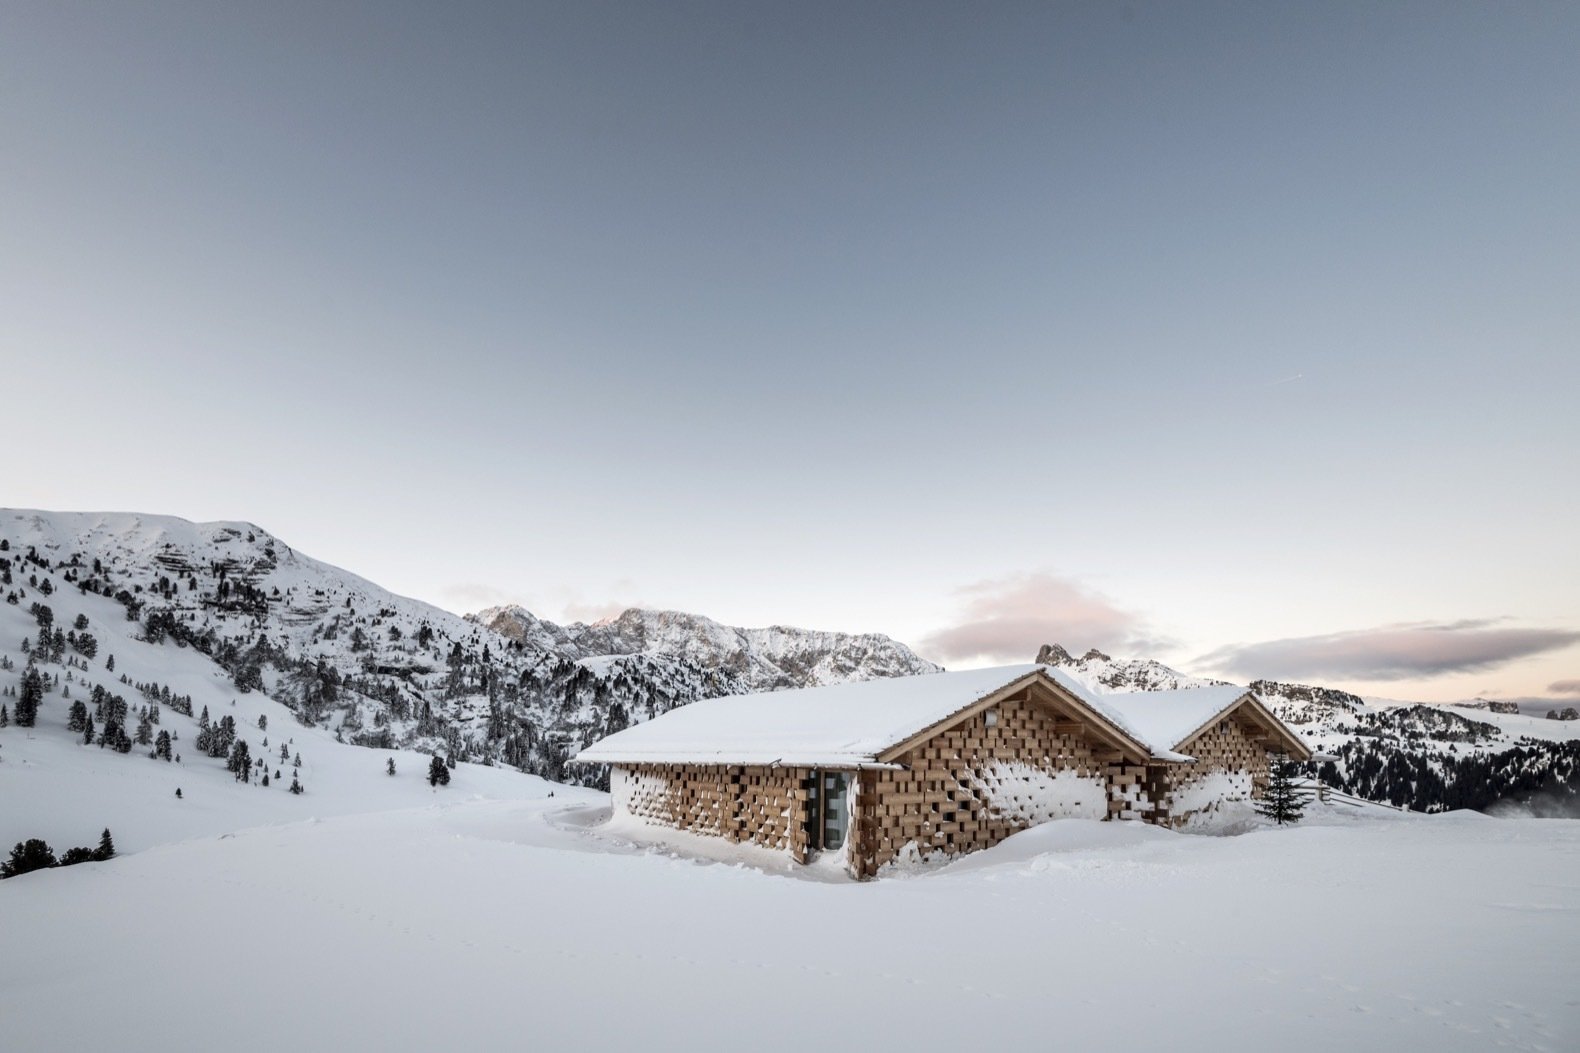 Escape to a Winter Fairytale at This Eco Retreat in the Italian Alps